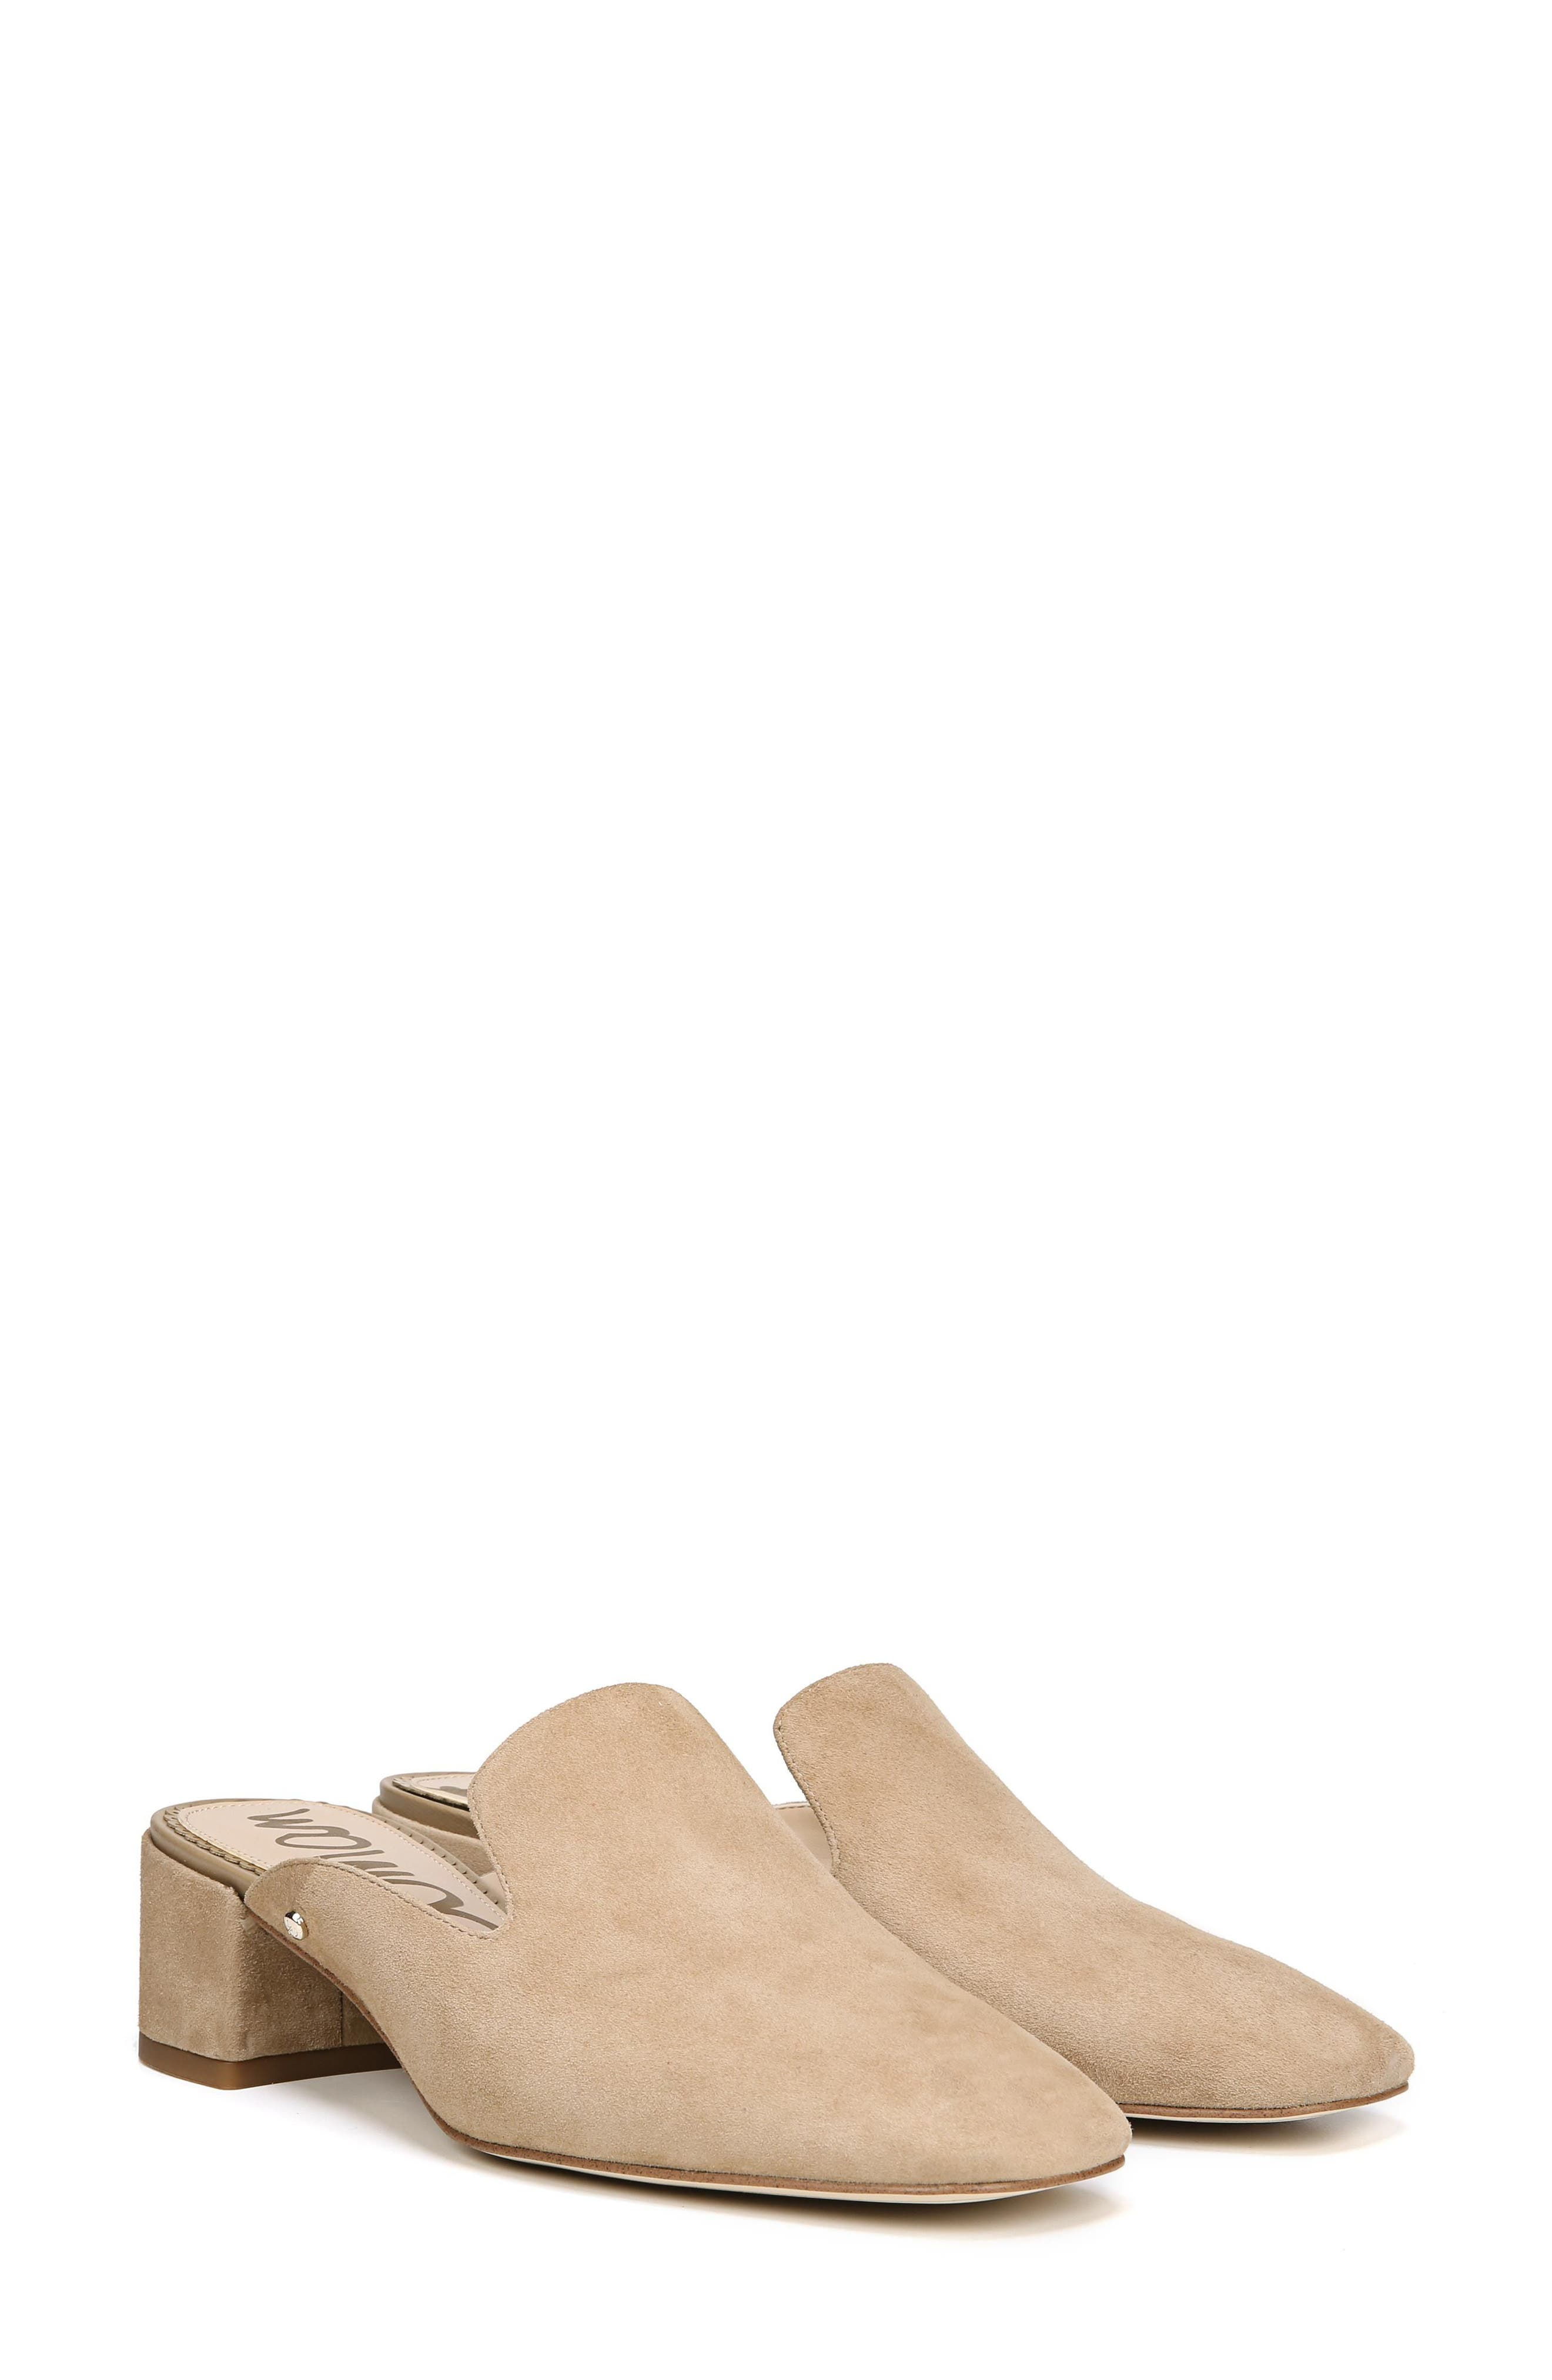 Adair Loafer Mule,                             Alternate thumbnail 7, color,                             OATMEAL LEATHER